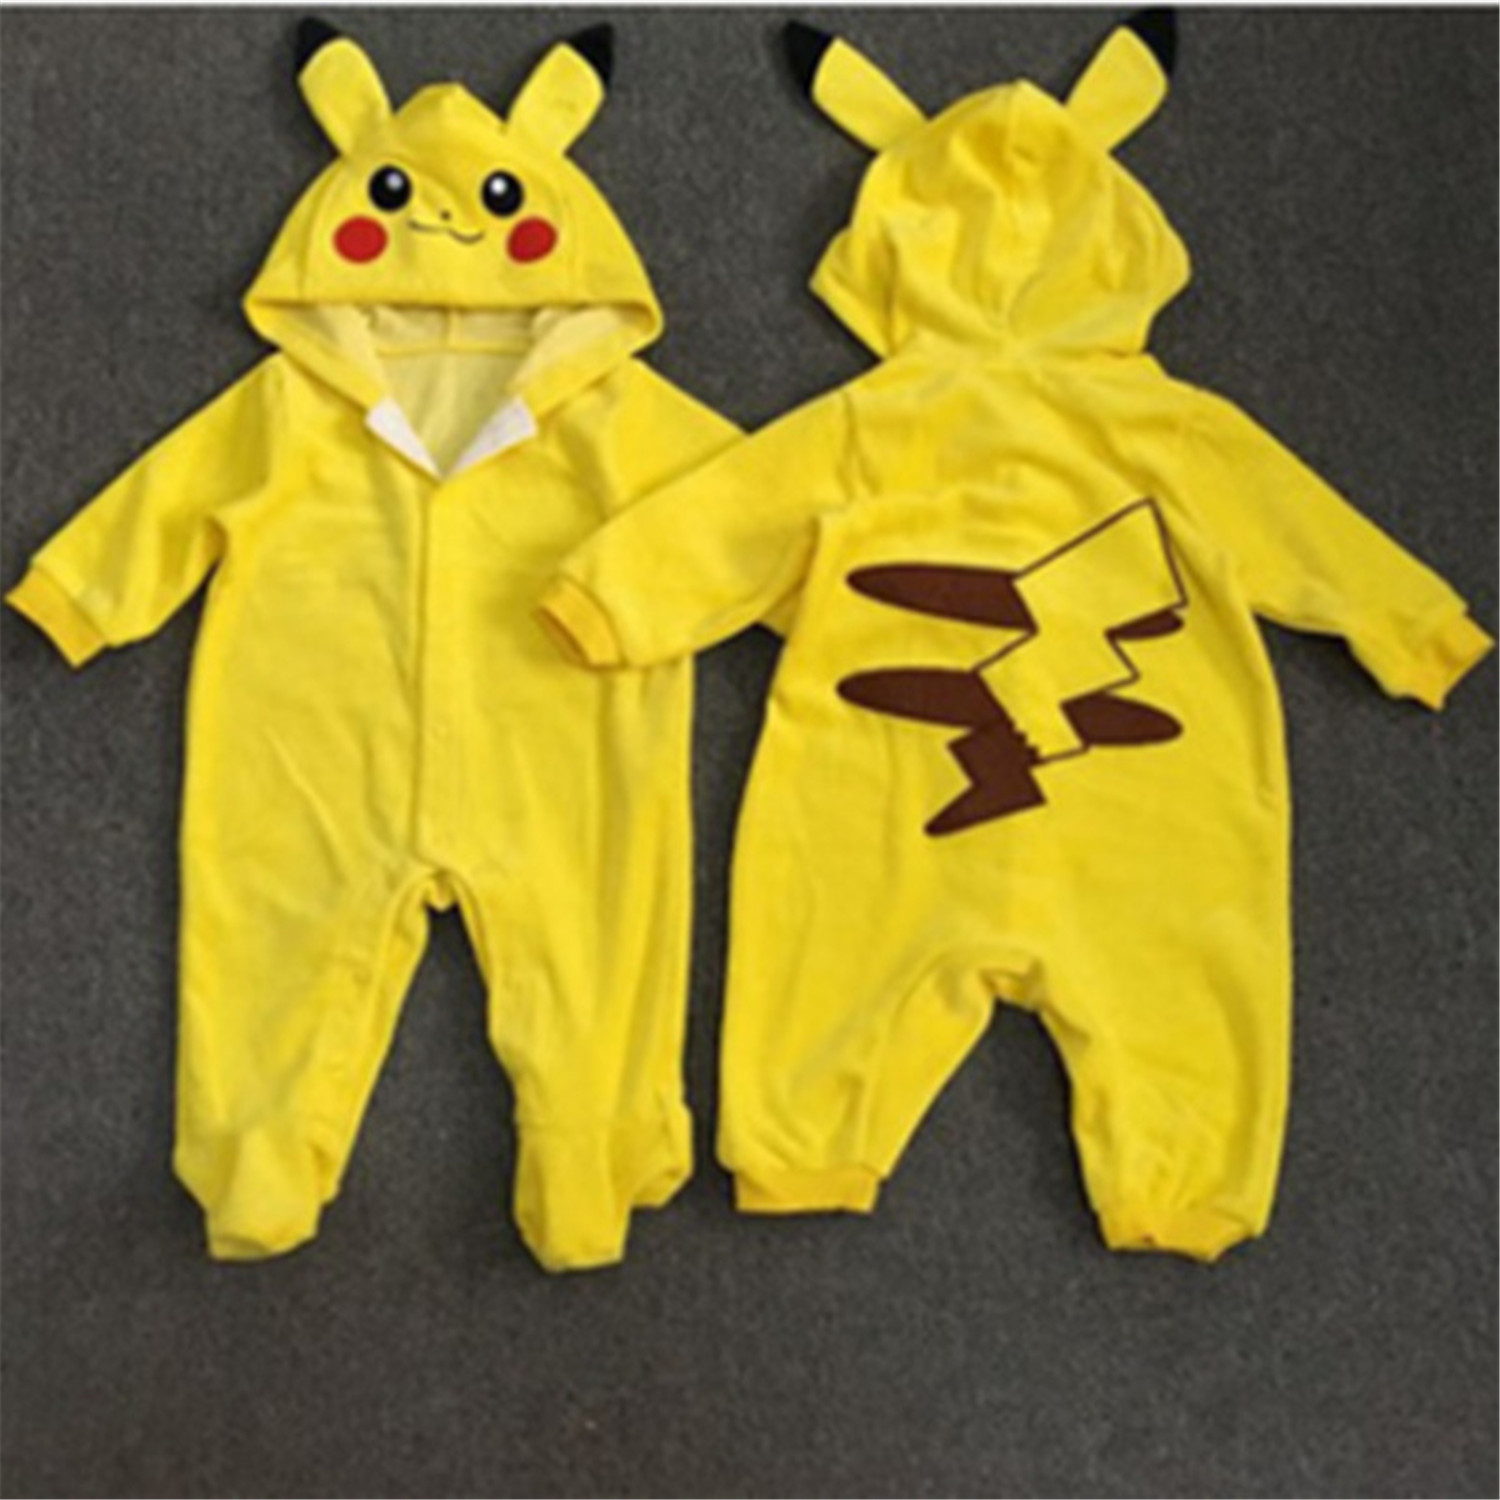 Androctones Copii Pokemon Pikachu Costum Onesie Copii Fete Băieți Cântăroase Cosplay Cosplay Pijamale Halloween Costume